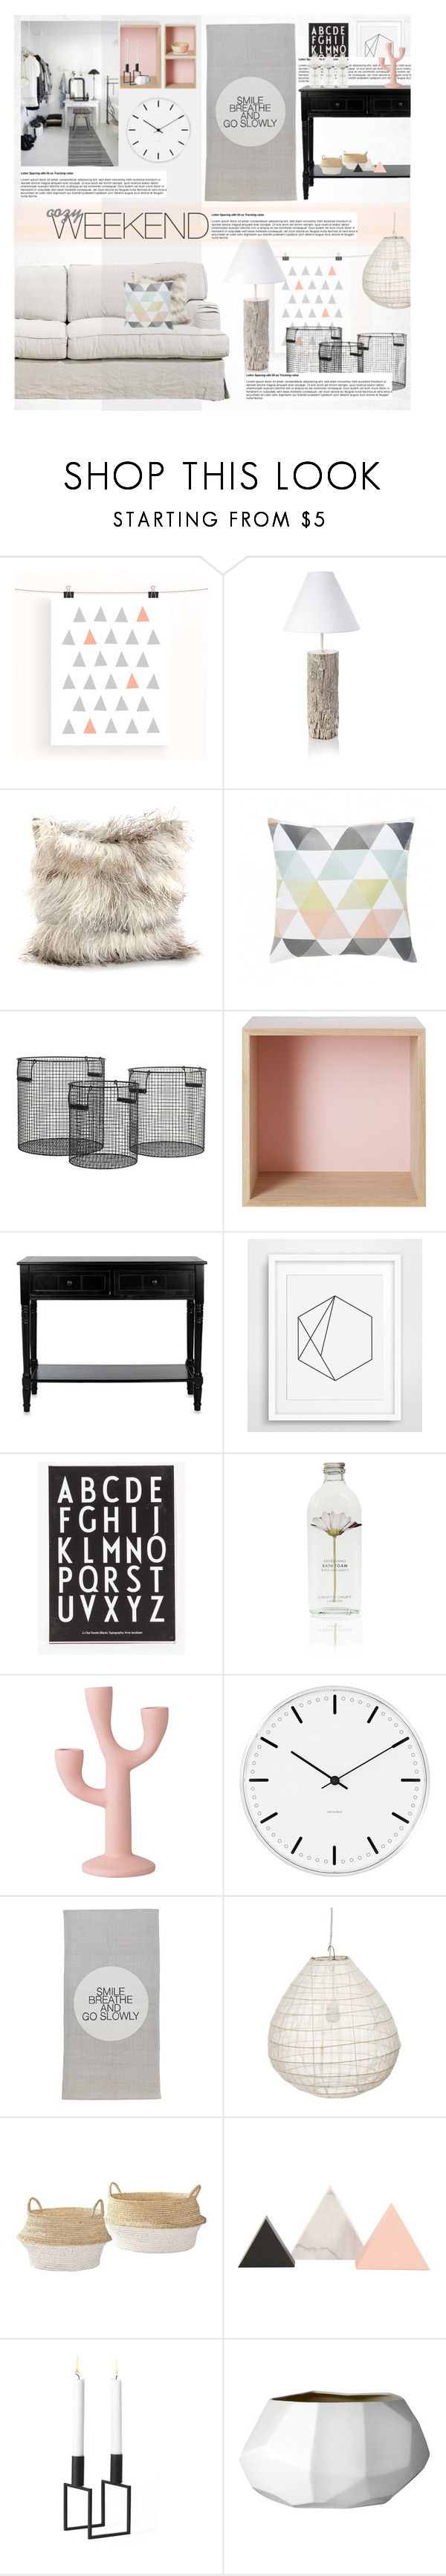 """""""Cozy Weekend"""" by allva ❤ liked on Polyvore featuring interior, interiors, interior design, home, home decor, interior decorating, French Connection, Dransfield & Ross, Nordal and Muuto"""